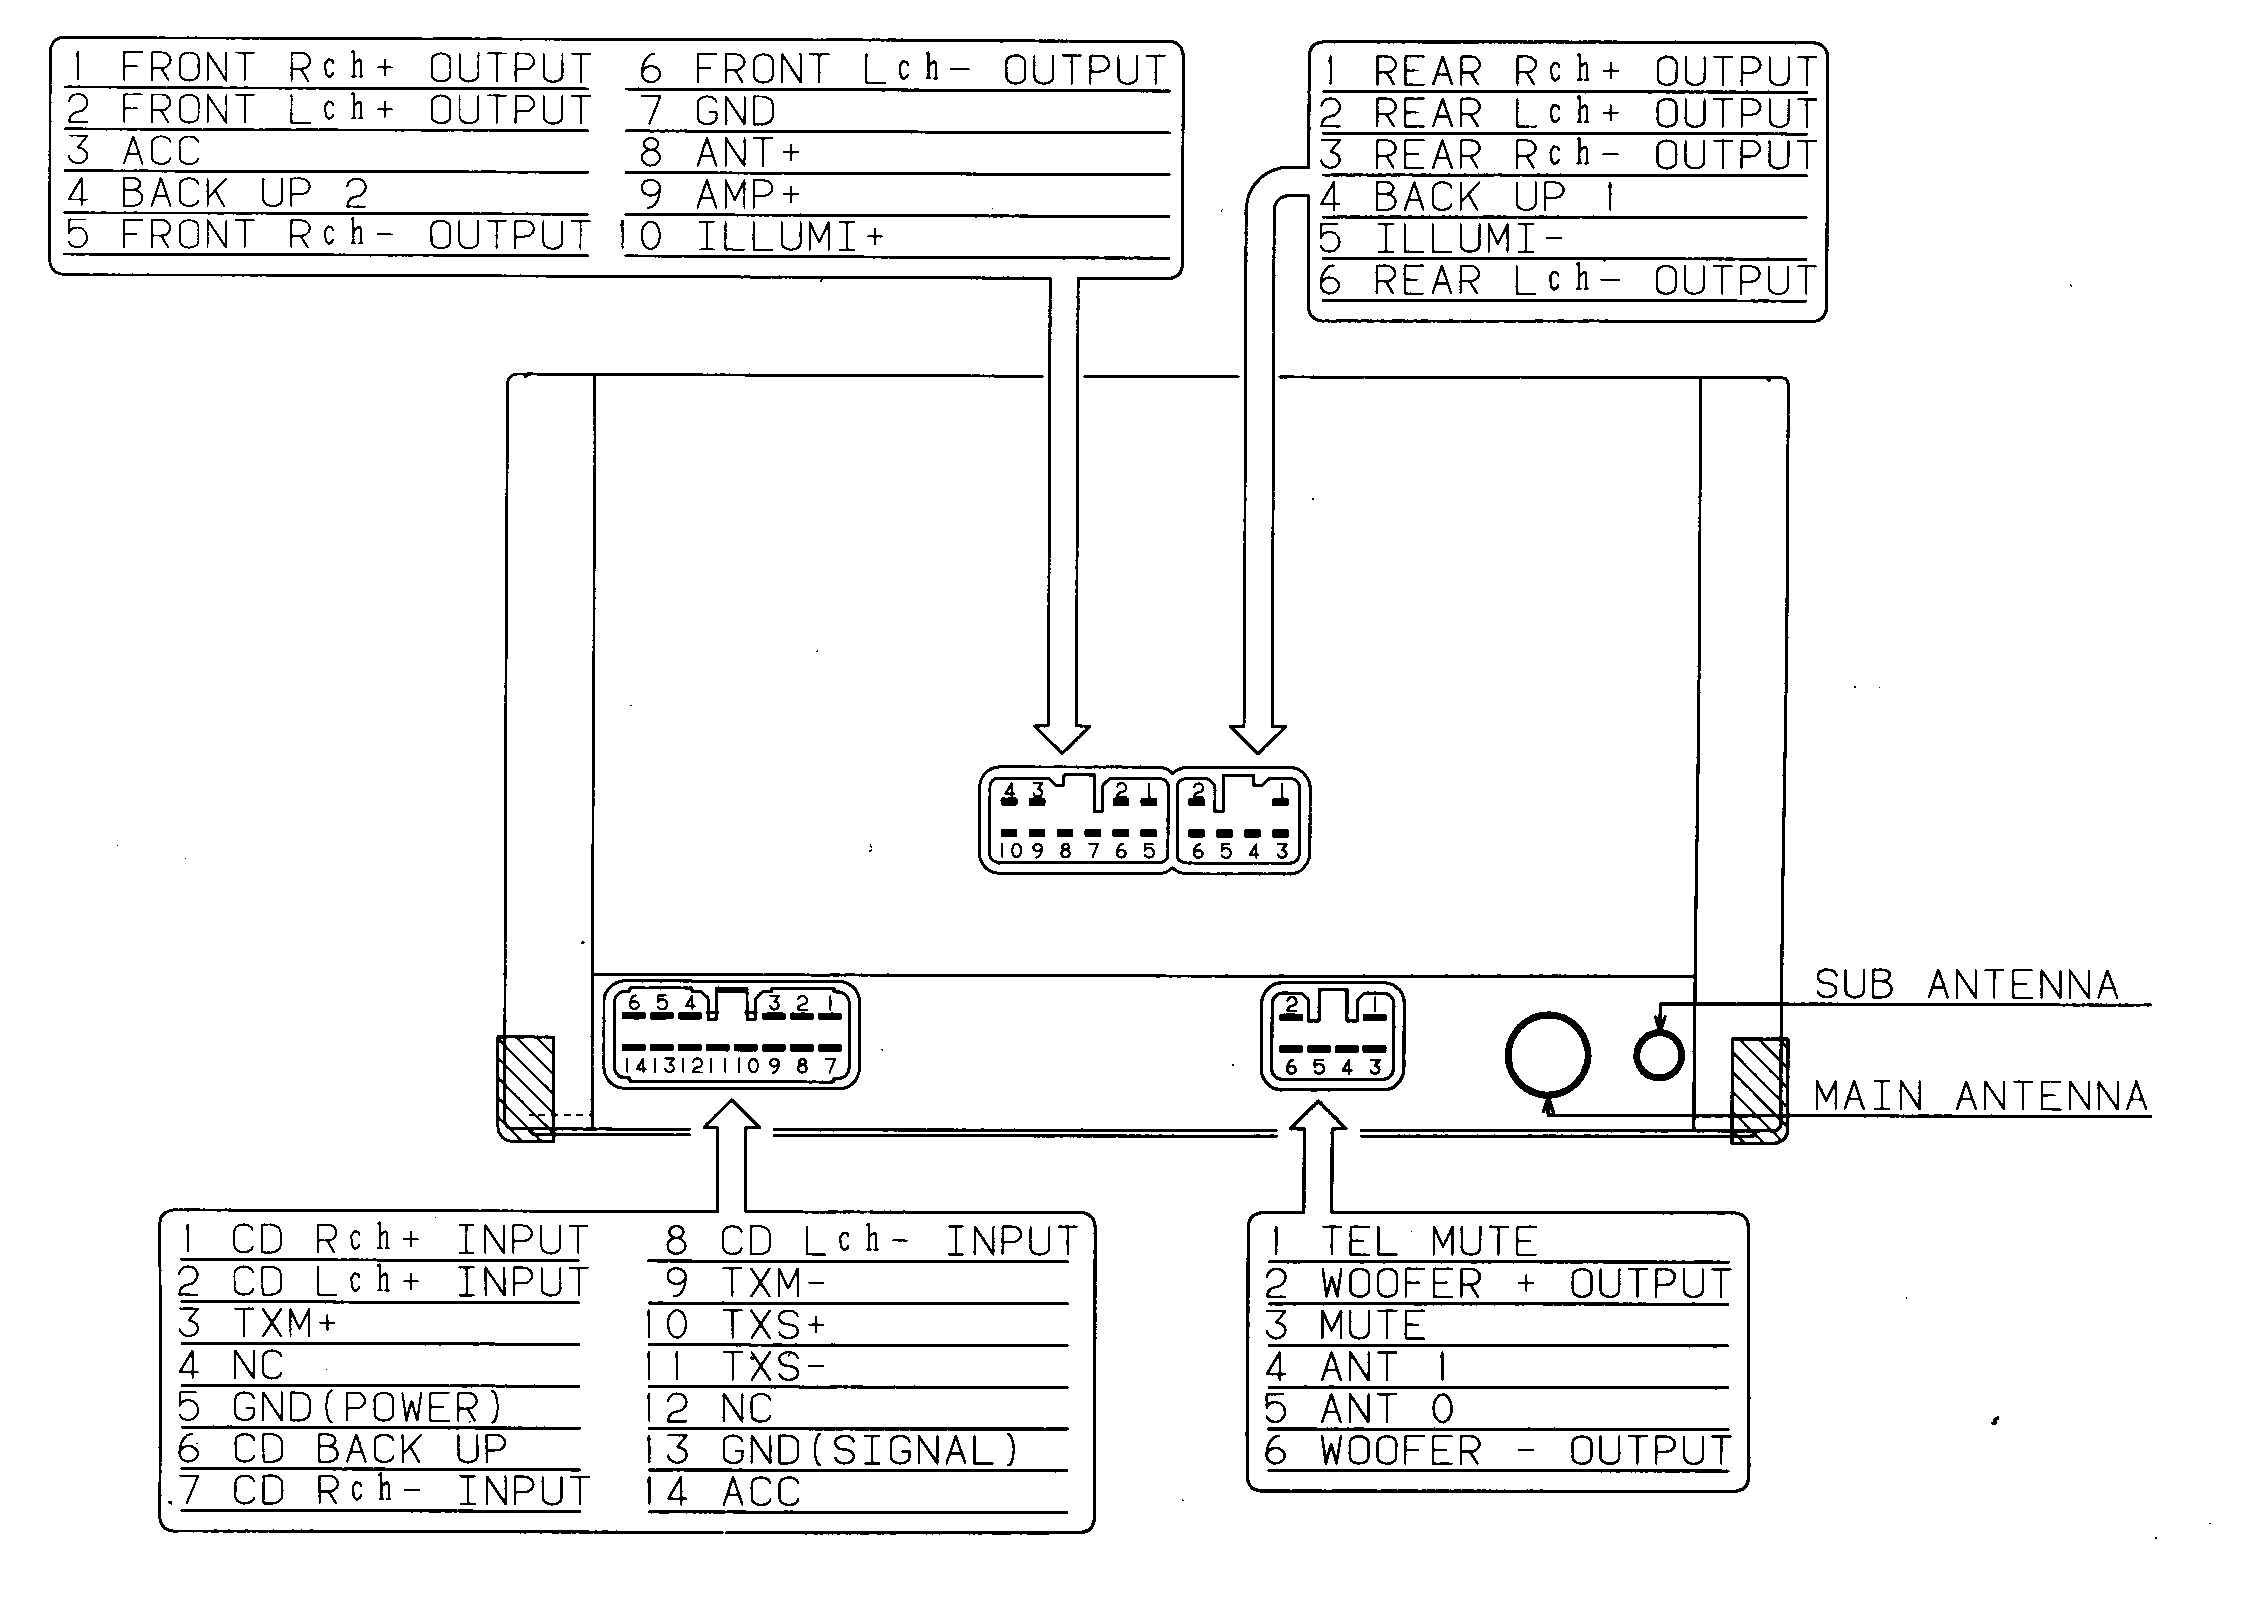 Lexus car stereo wiring diagram harness pinout connector wire amplifier wiring diagram readingrat net clarion vx409 wiring diagram at webbmarketing.co